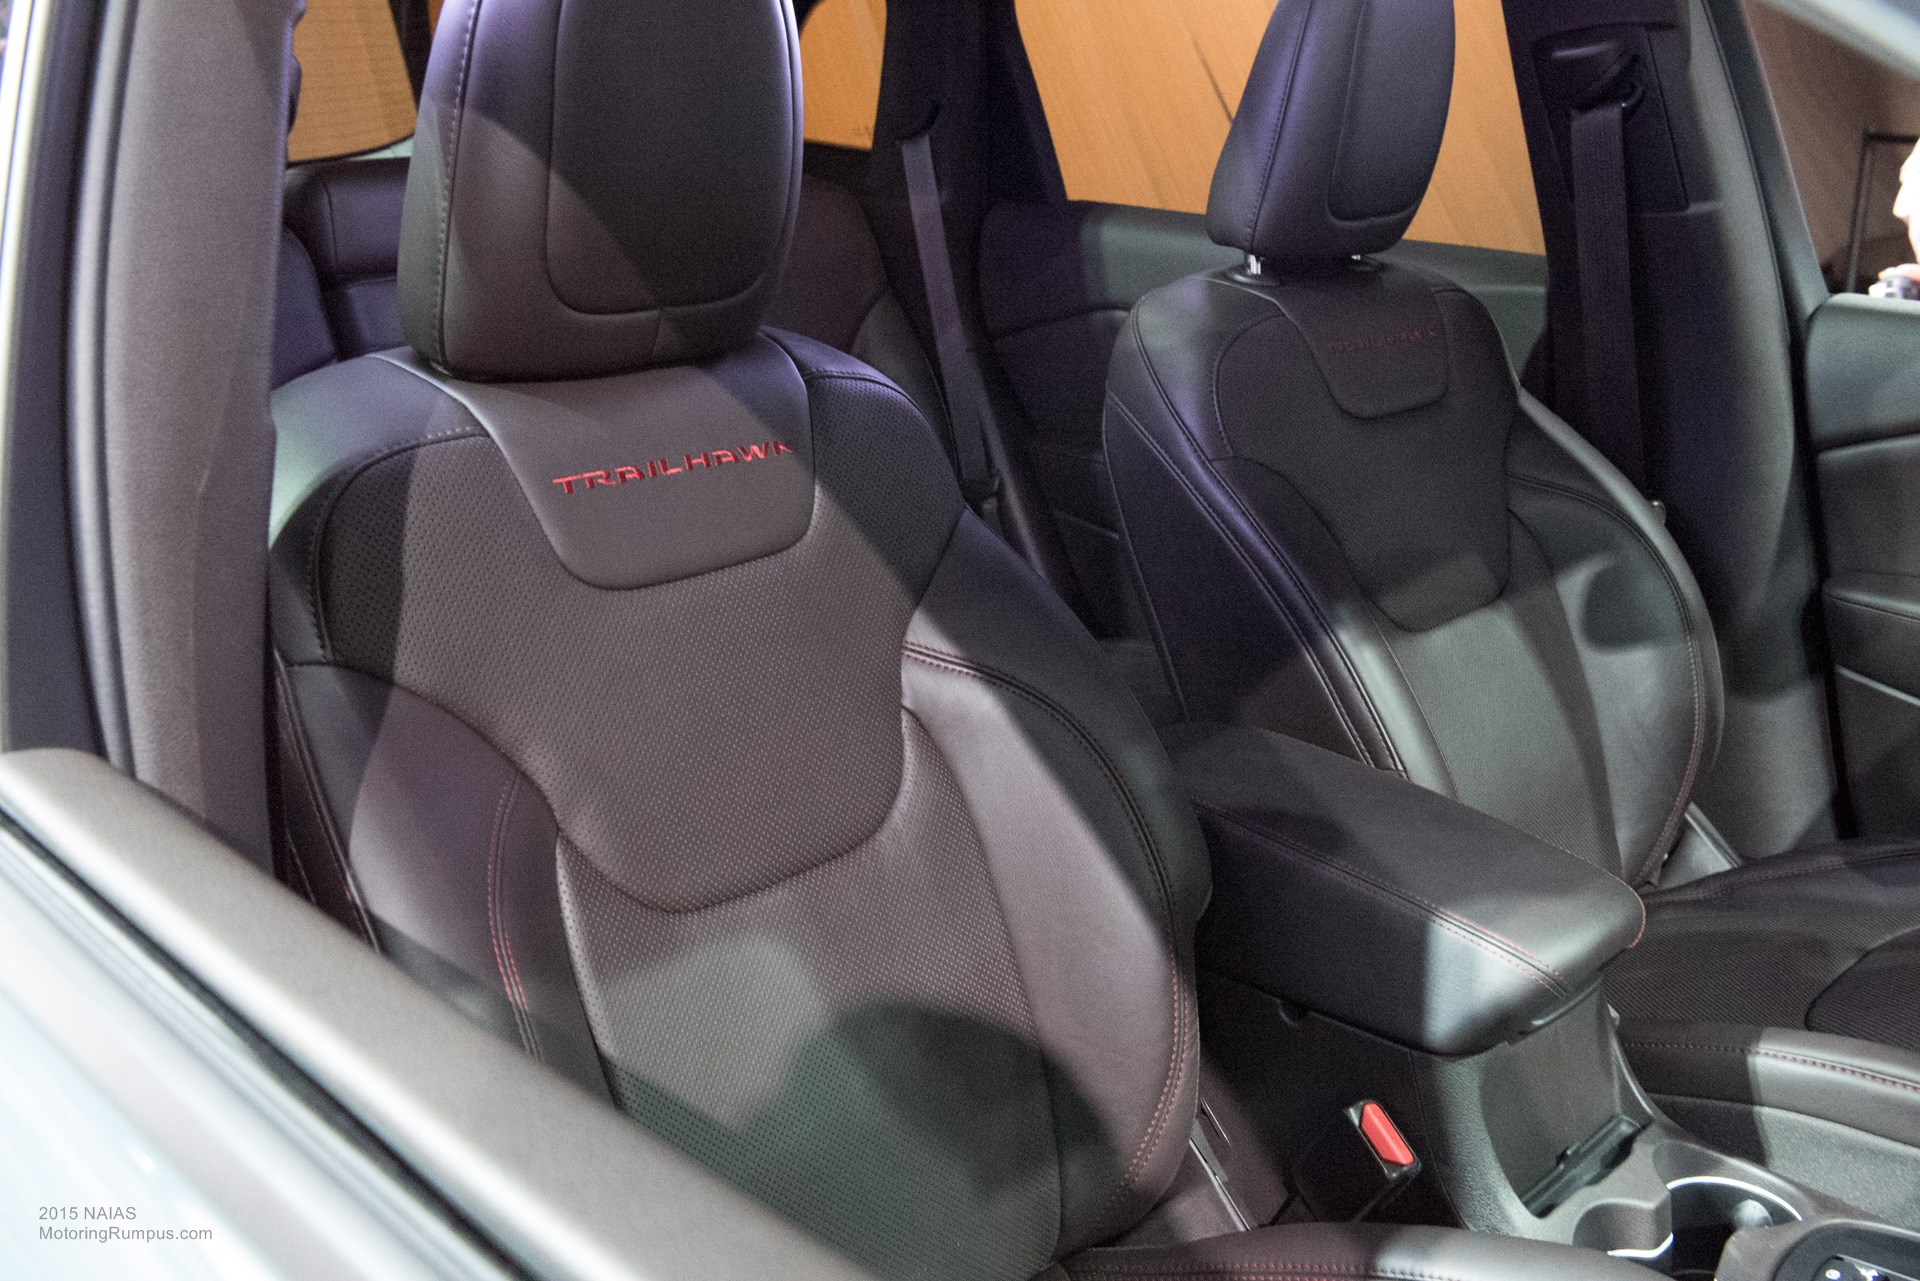 2015 NAIAS Jeep Cherokee Trailhawk Seats